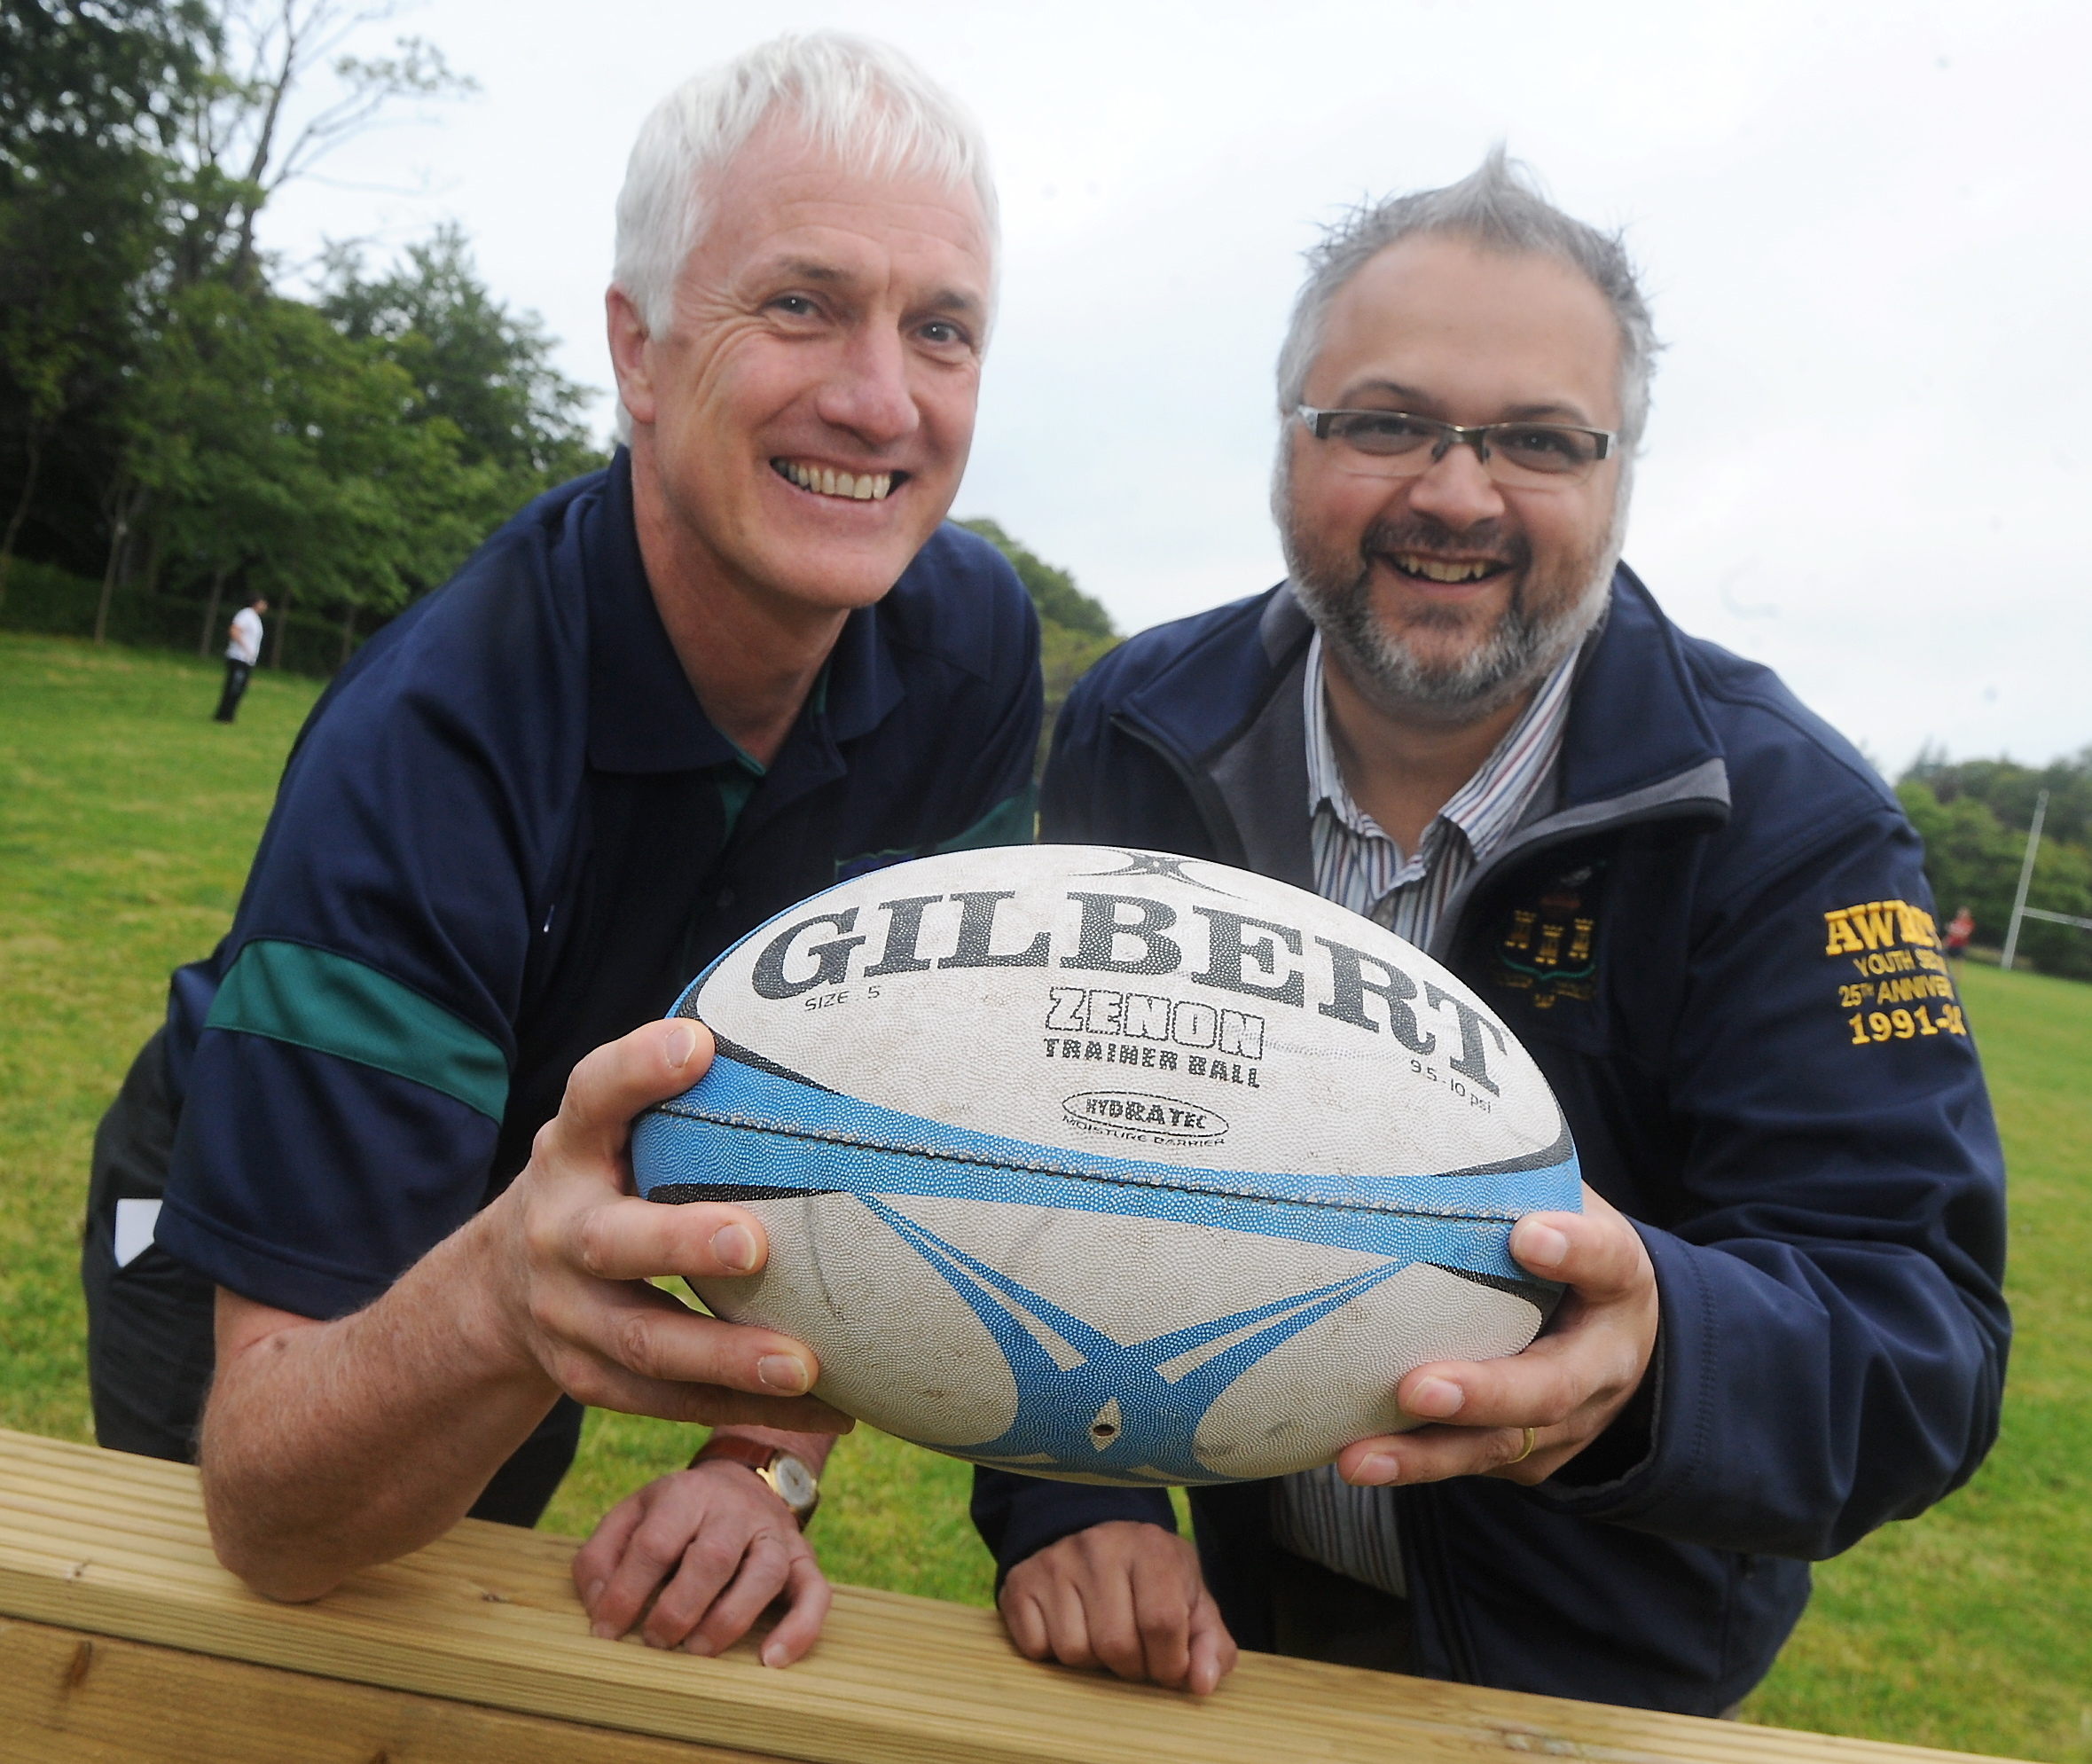 Aberdeen Wanderers   club president Bernard Mullins, left, and Guy Mullinor, president of the youth teams.